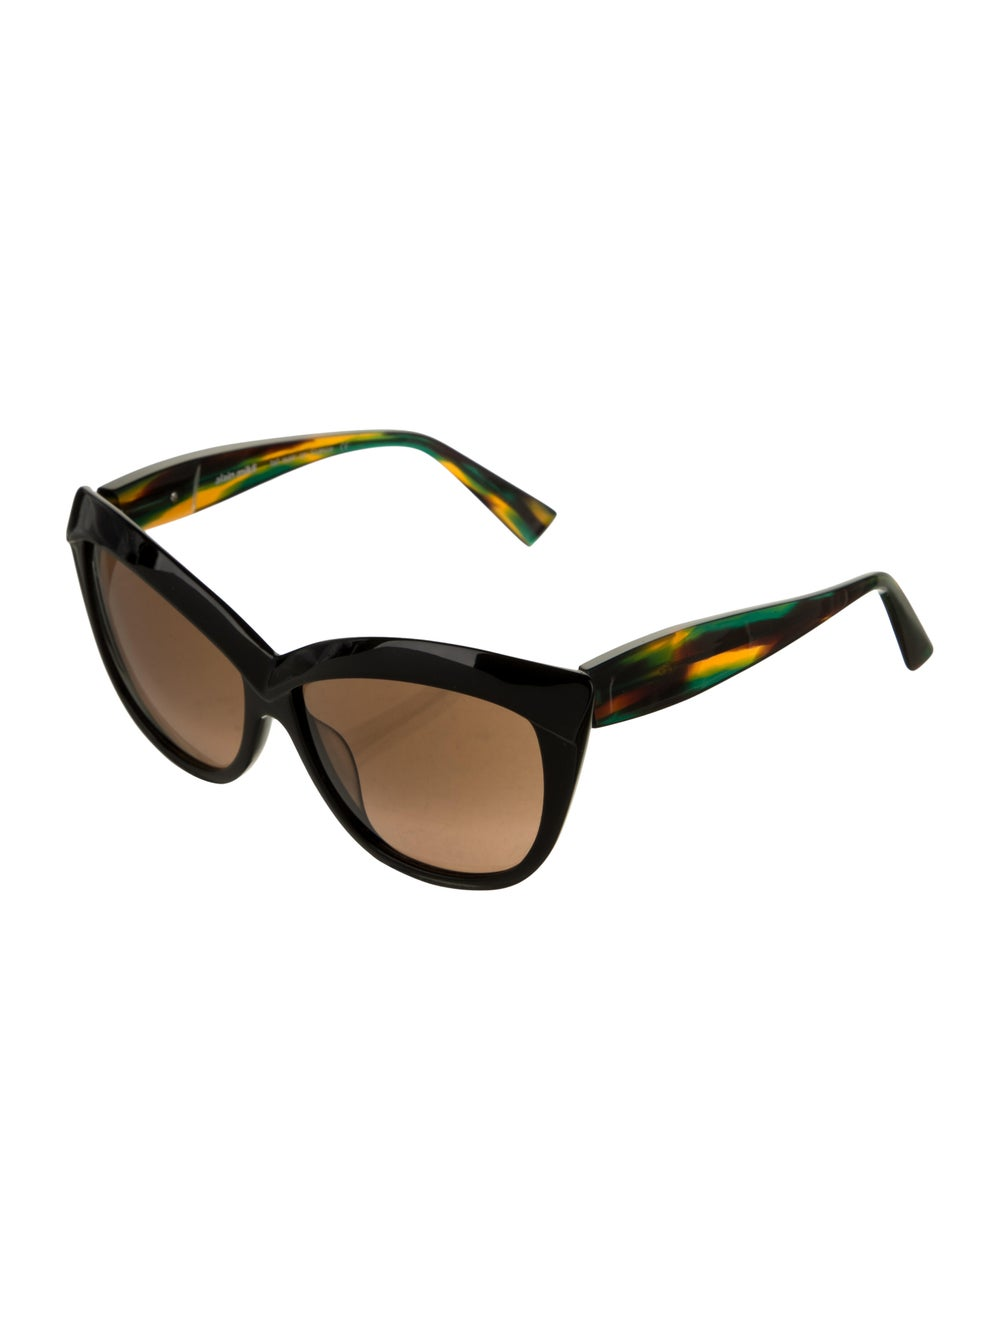 Alain Mikli Cat-Eye Tinted Sunglasses Black - image 2